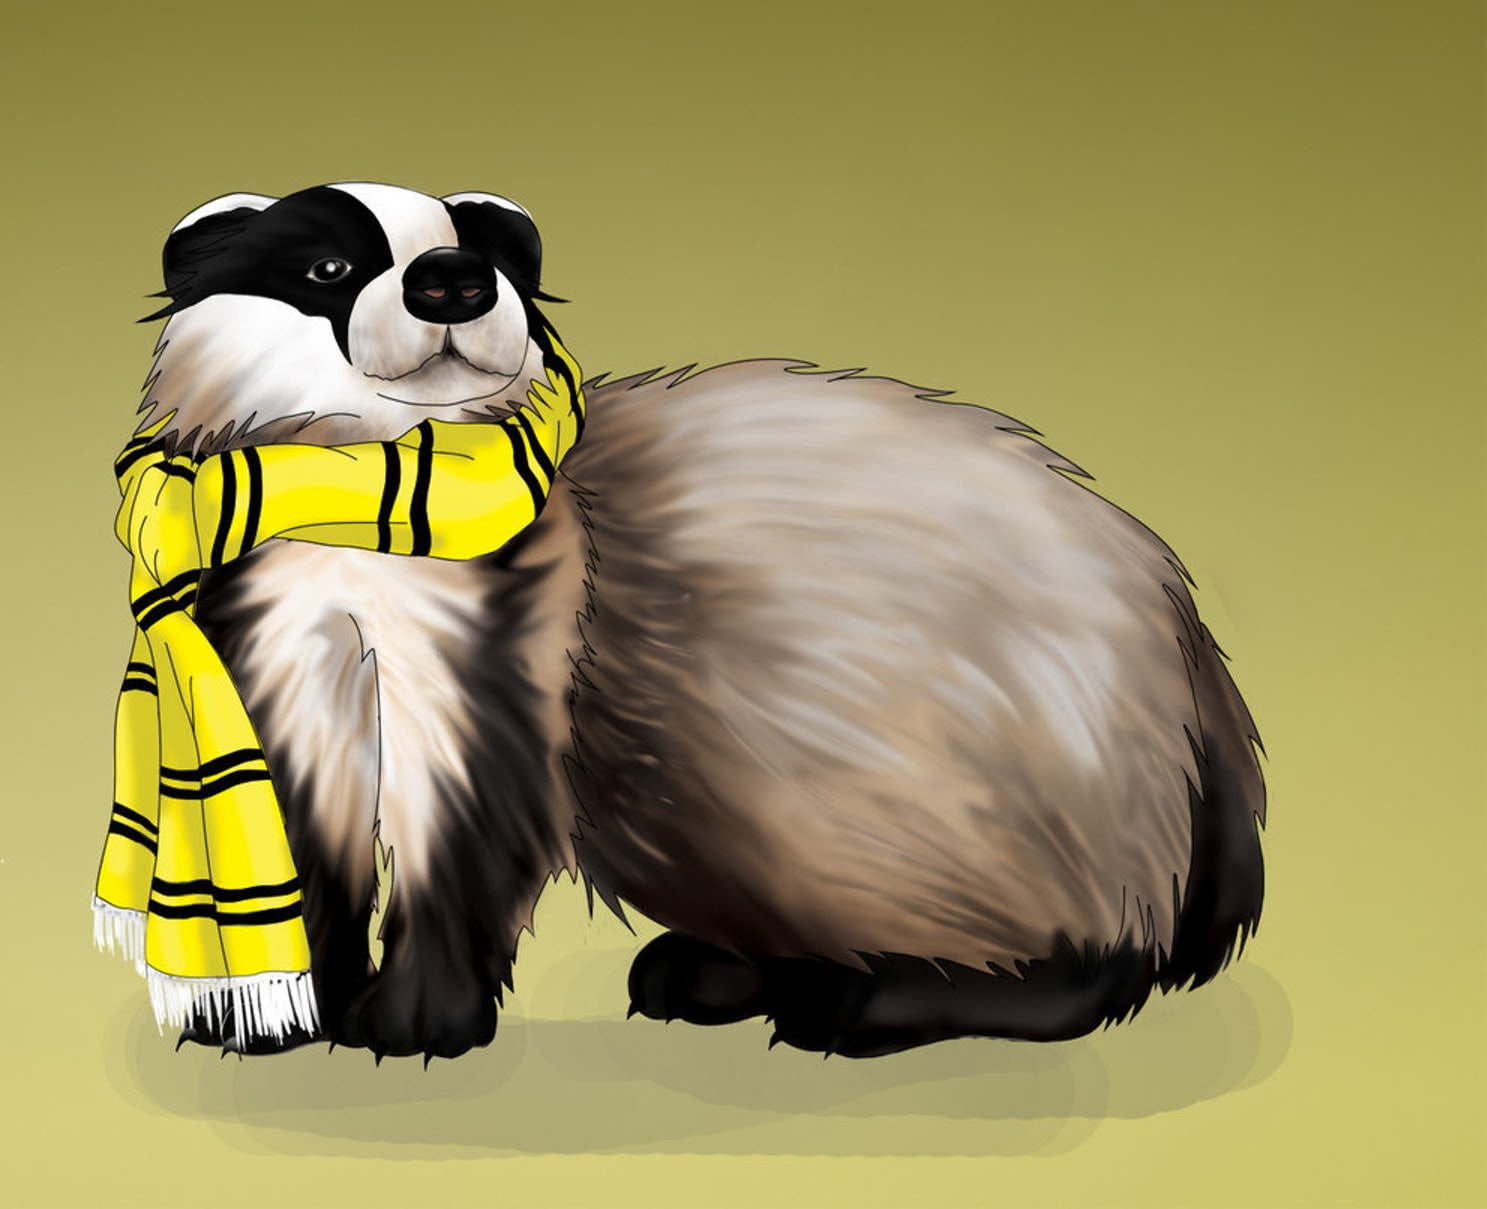 A noble, scarfed badger